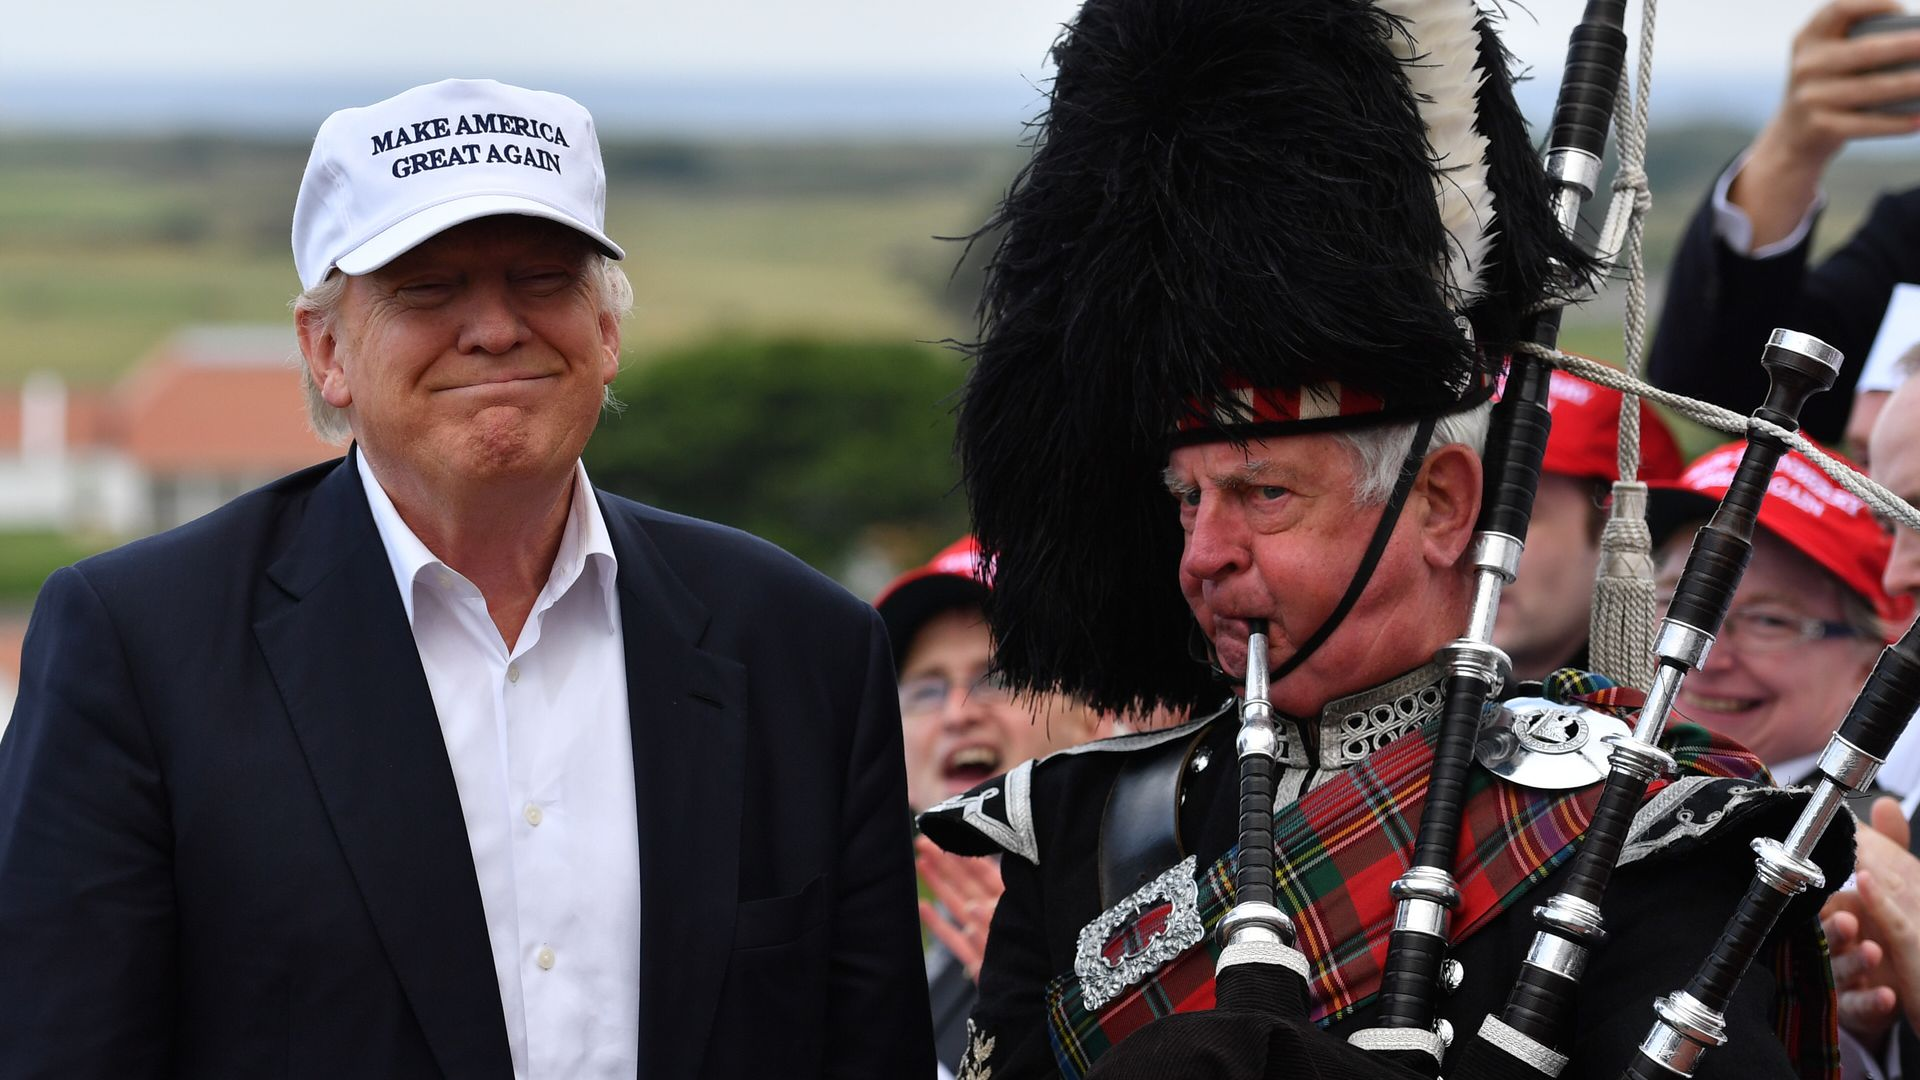 A bagpipe player next to Donald Trump as he arrives to his Trump Turnberry Resort.